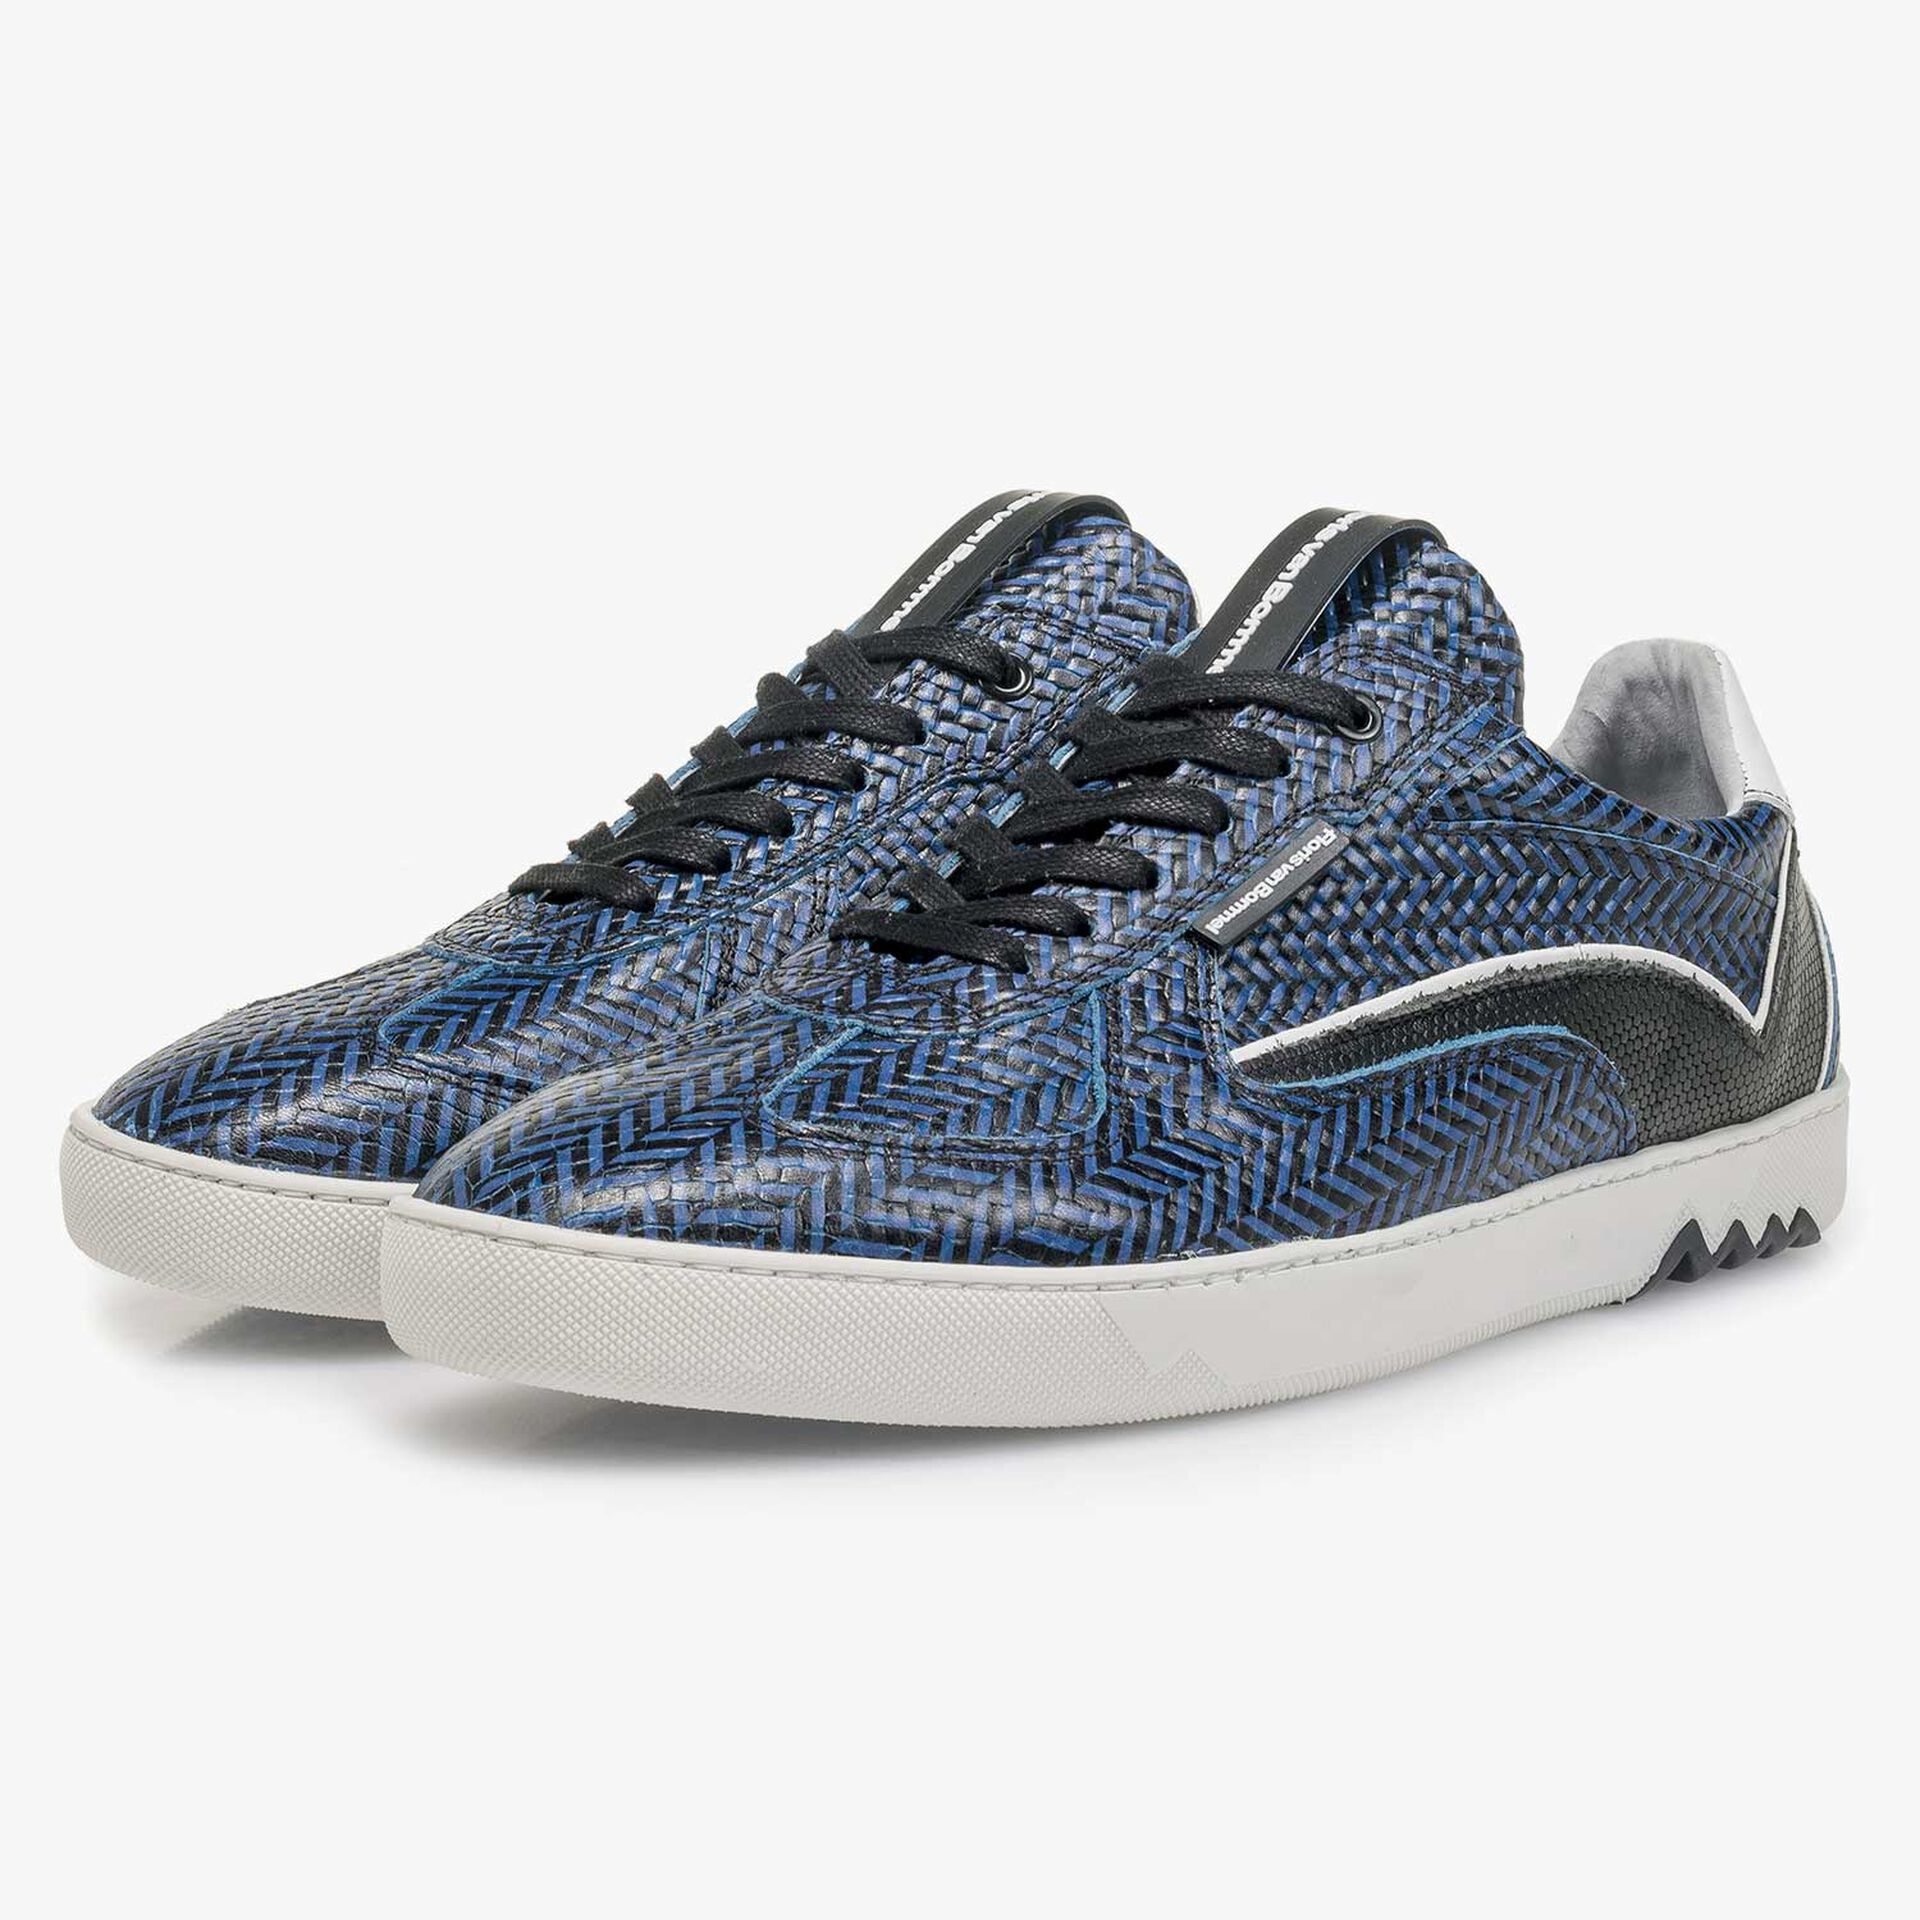 Blue leather sneaker with a herringbone pattern